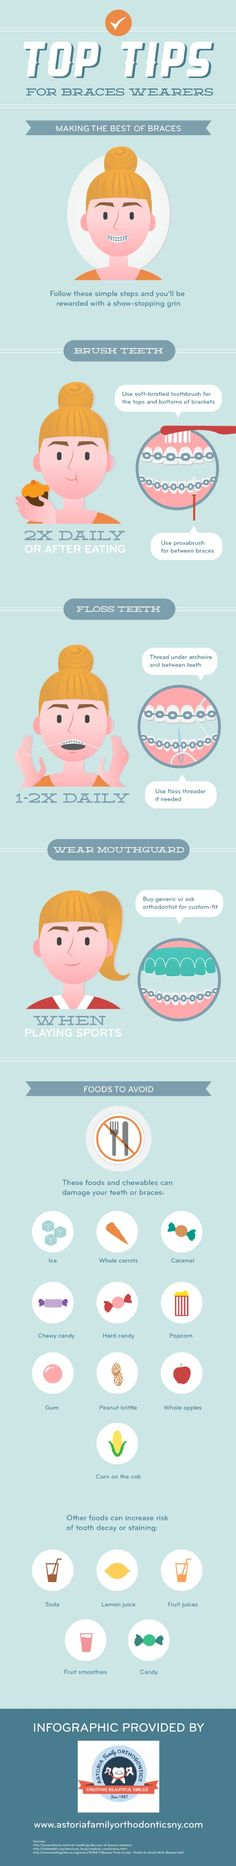 When you have braces, it is important to floss your teeth once or twice a day. Pay attention to the areas under the archwire and the space between your teeth. For more information on oral care, check out this infographic from Woodside's Astoria Family Orthodontics. Source: http://www.astoriafamilyorthodonticsny.com/670237/2013/03/26/top-tips-for-braces-wearers-infographic.html